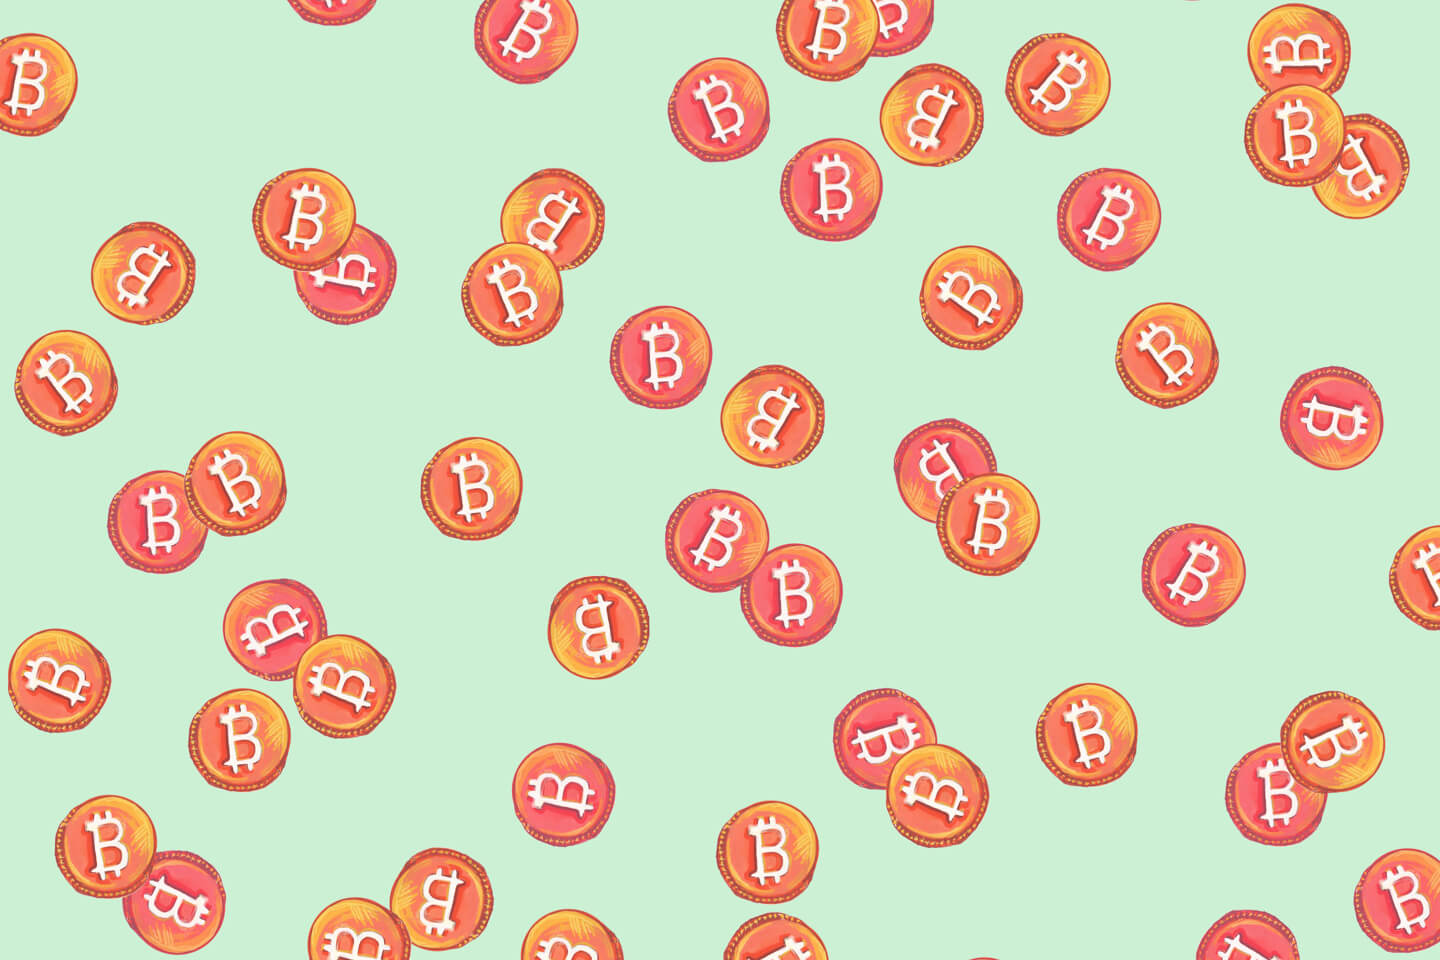 Bitcoin Themed Wrapping Paper